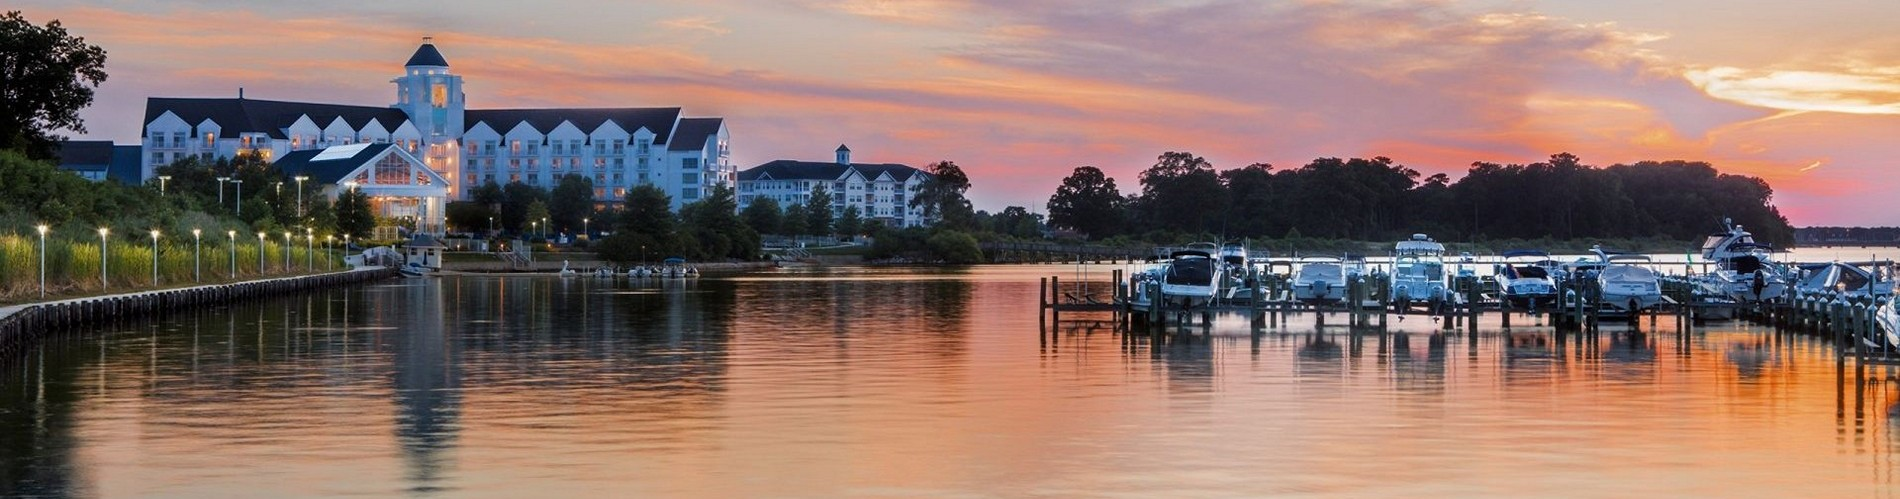 Hyatt-Regency-Chesapeake-Bay-Golf-Resort-Spa-and-Marina-P210-Resort-at-Sunset.adapt_.16x9.1920.1080